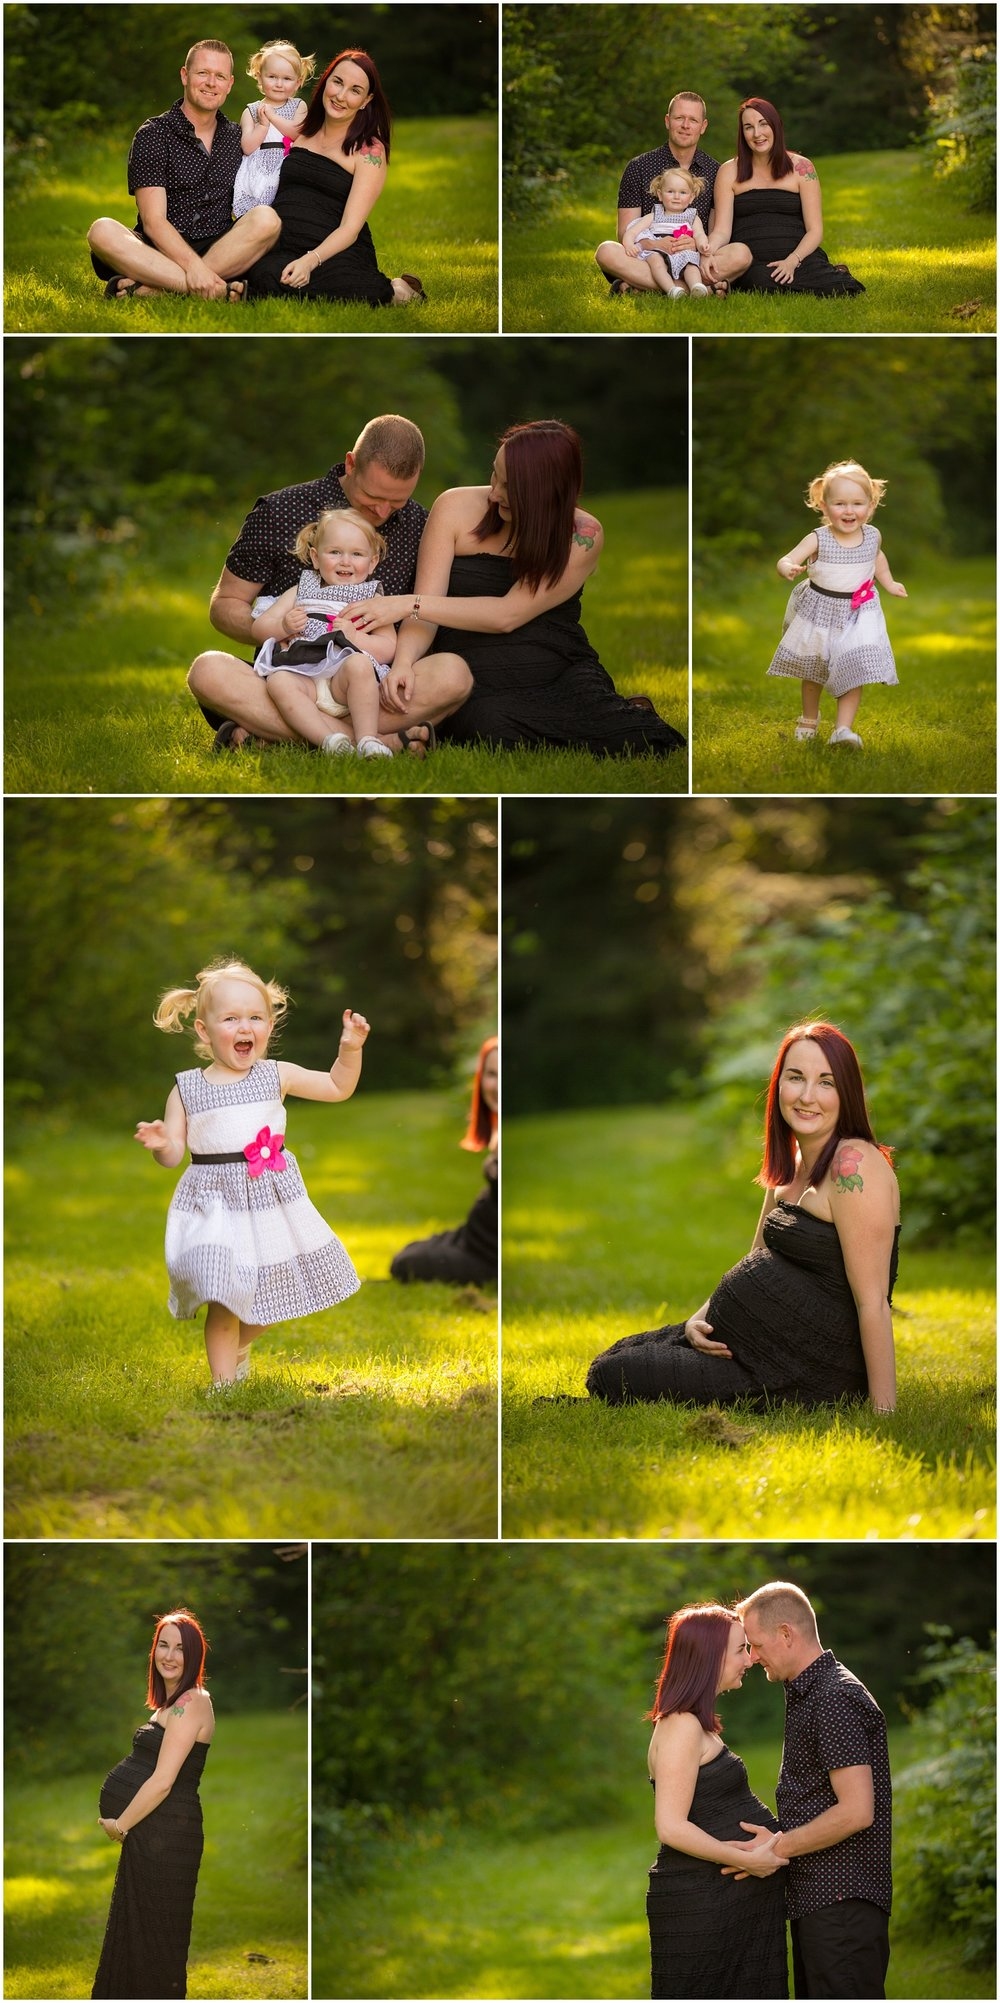 Amazing Day Photography - Derby Reach Park Maternity Session - Langley Maternity Photographer (6).jpg